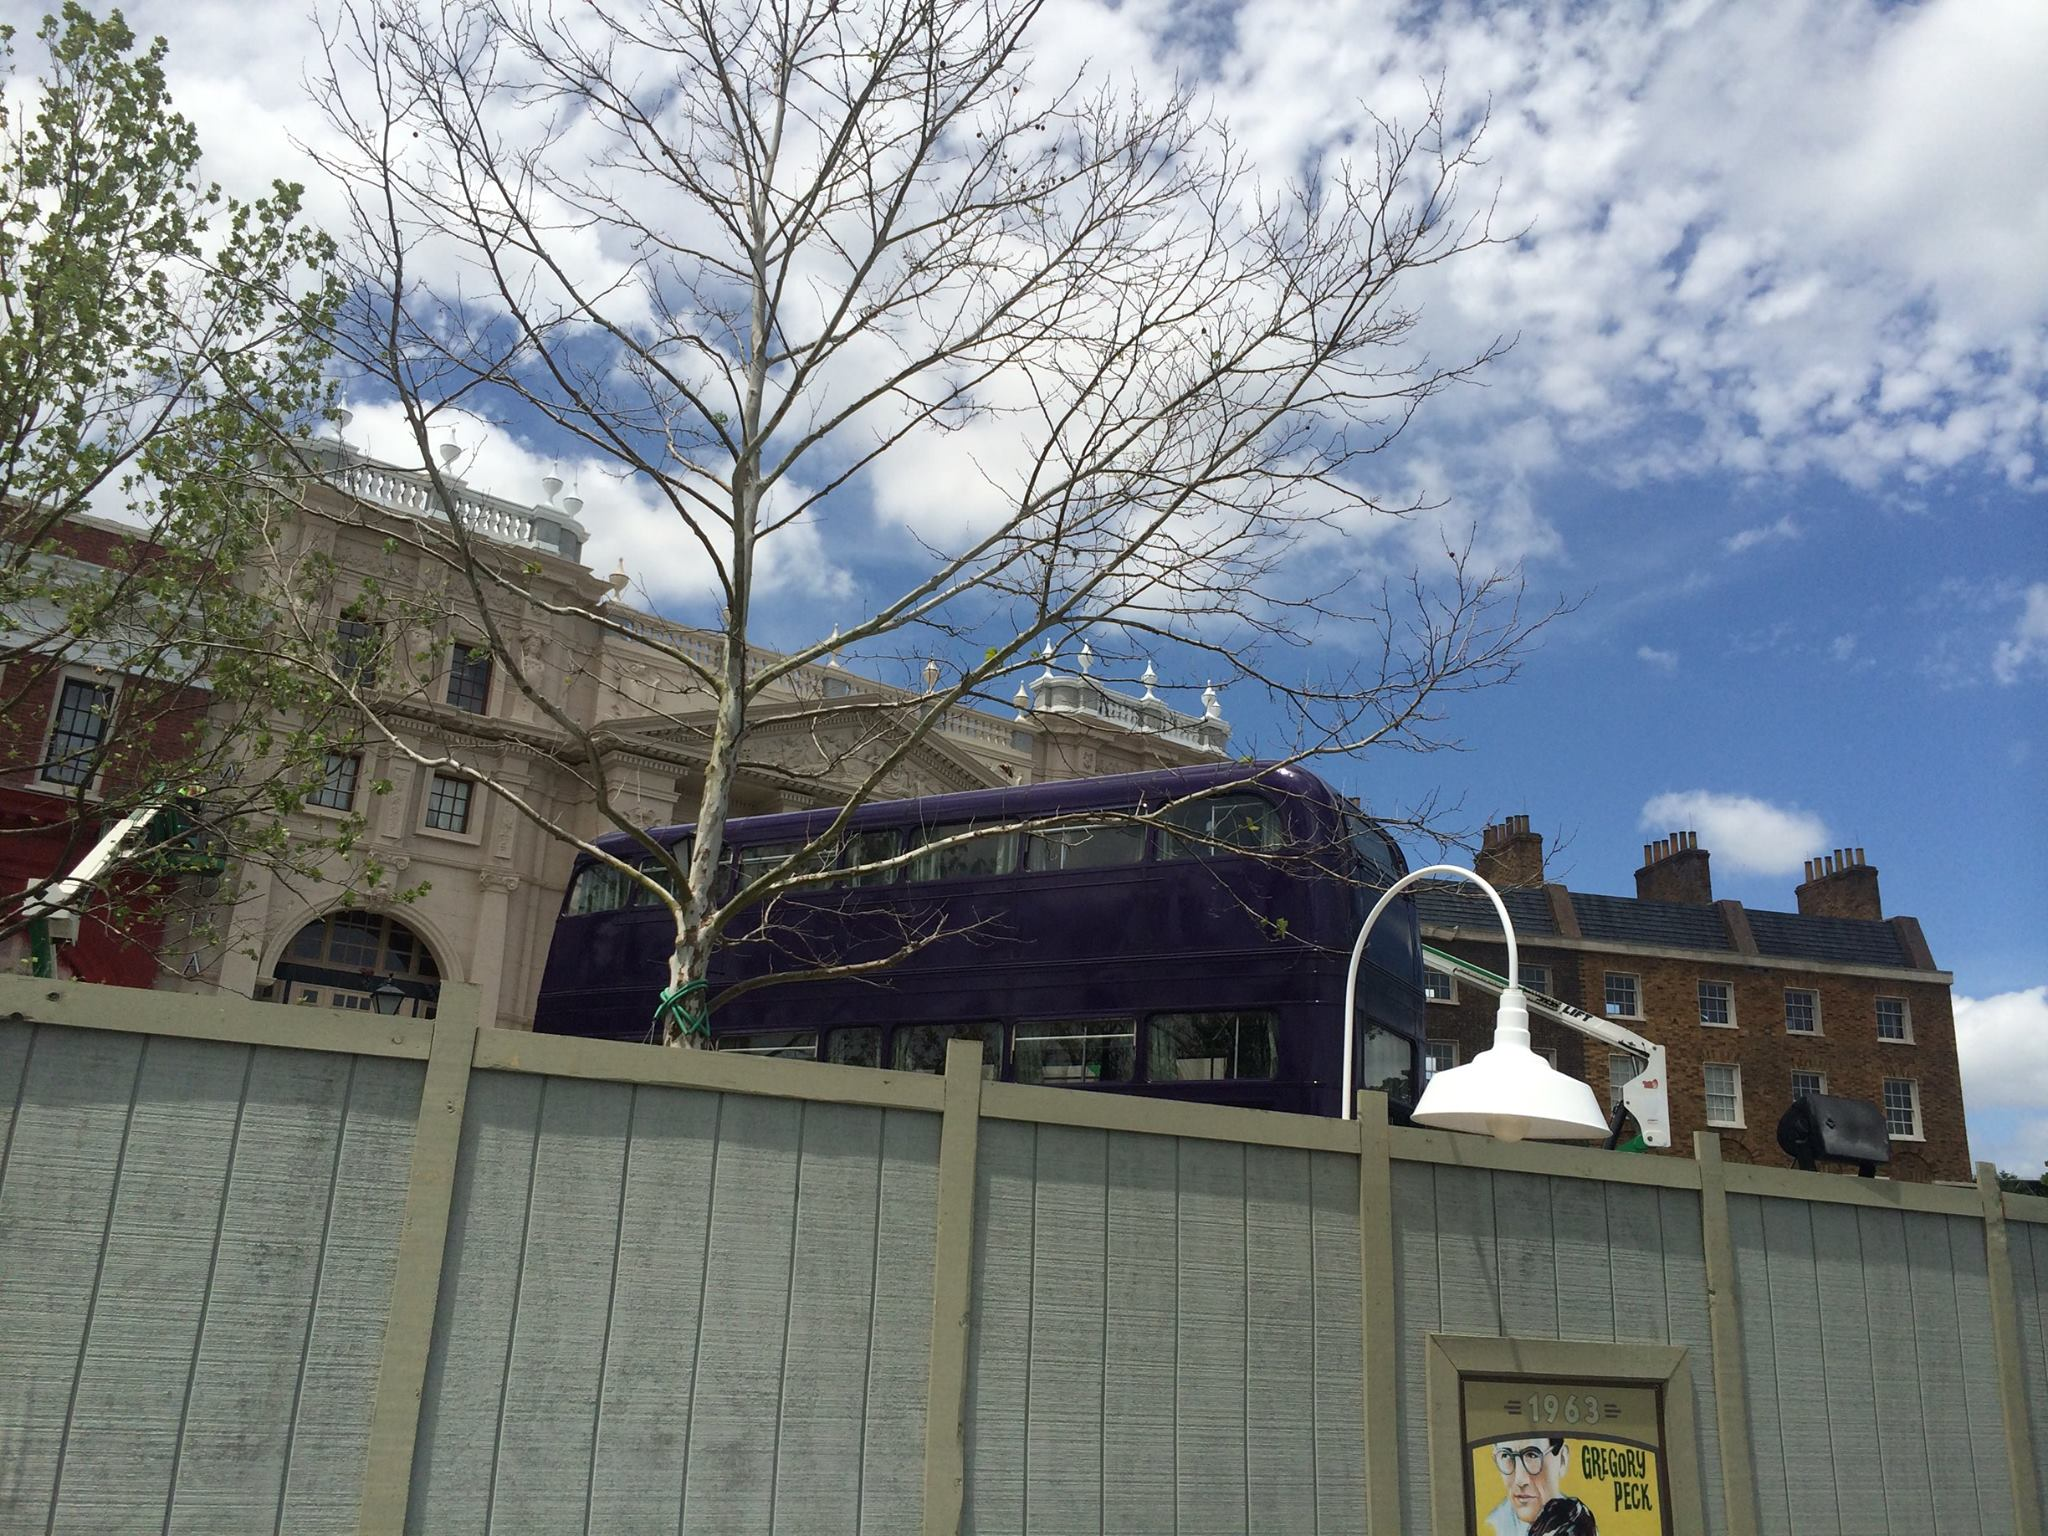 Knight Bus at Diagon Alley